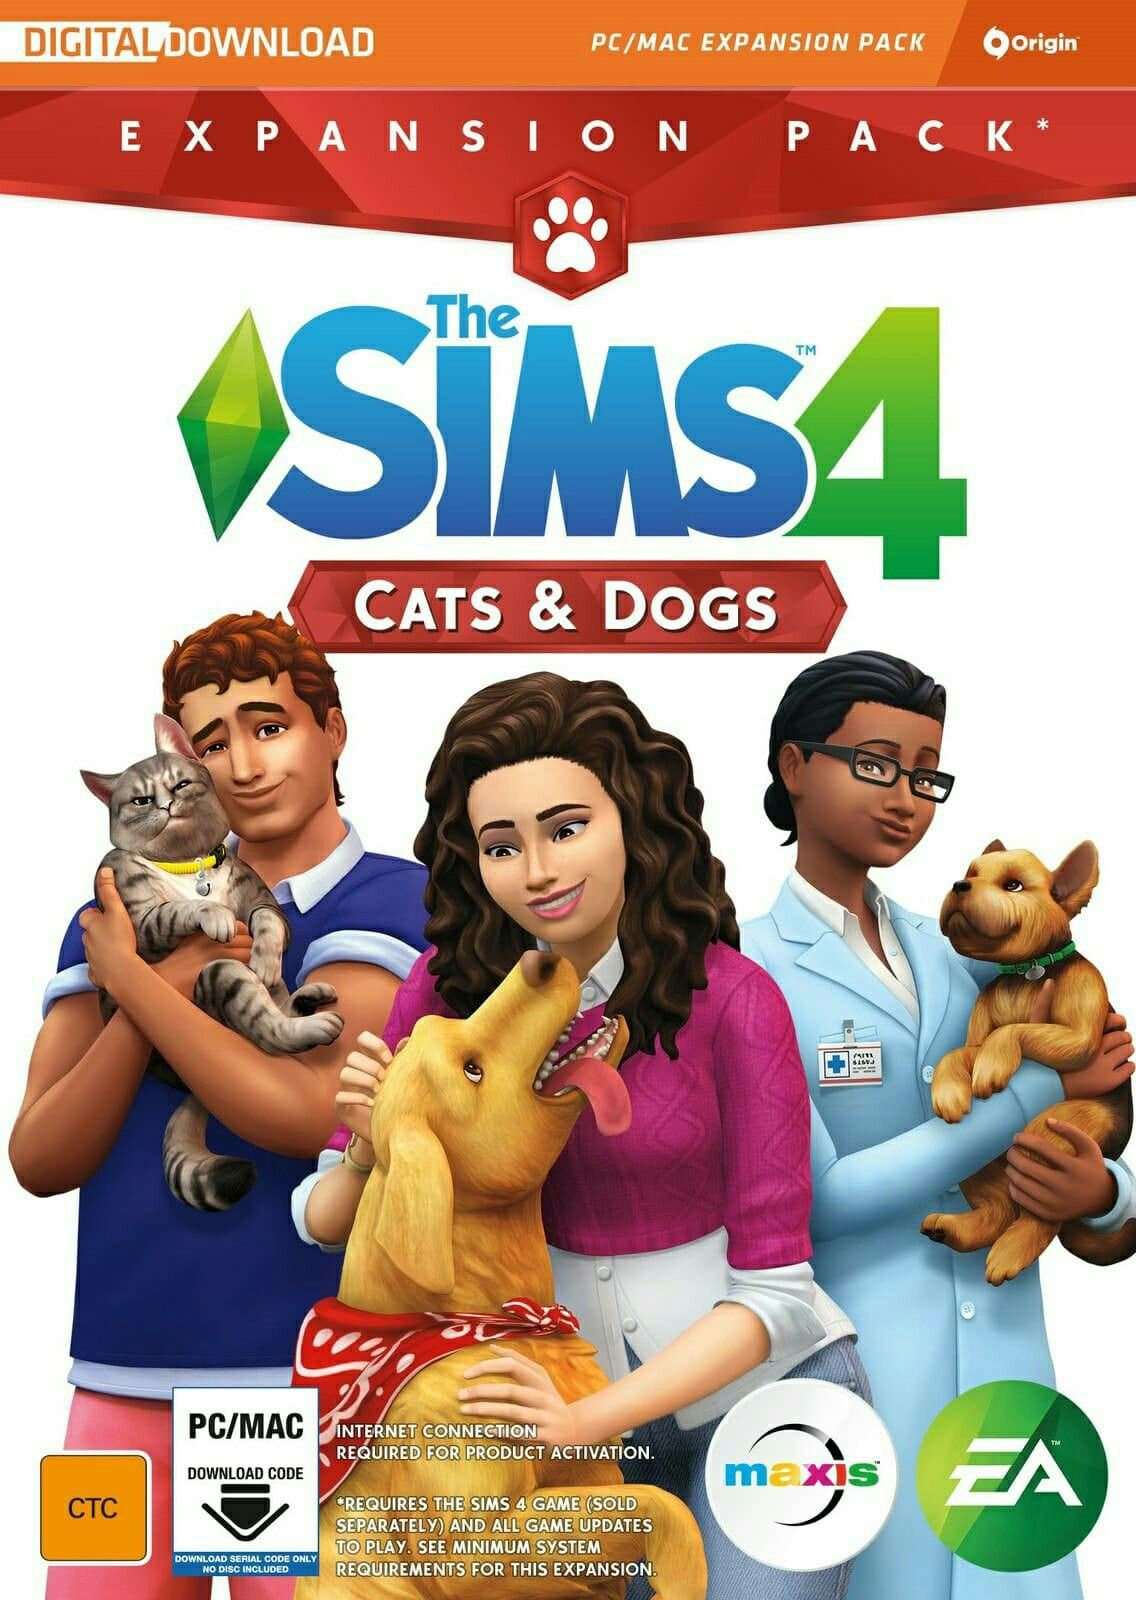 Pin By Laura Sanchez On Video Games With Images Sims 4 Pets The Sims 4 Packs Sims Pets